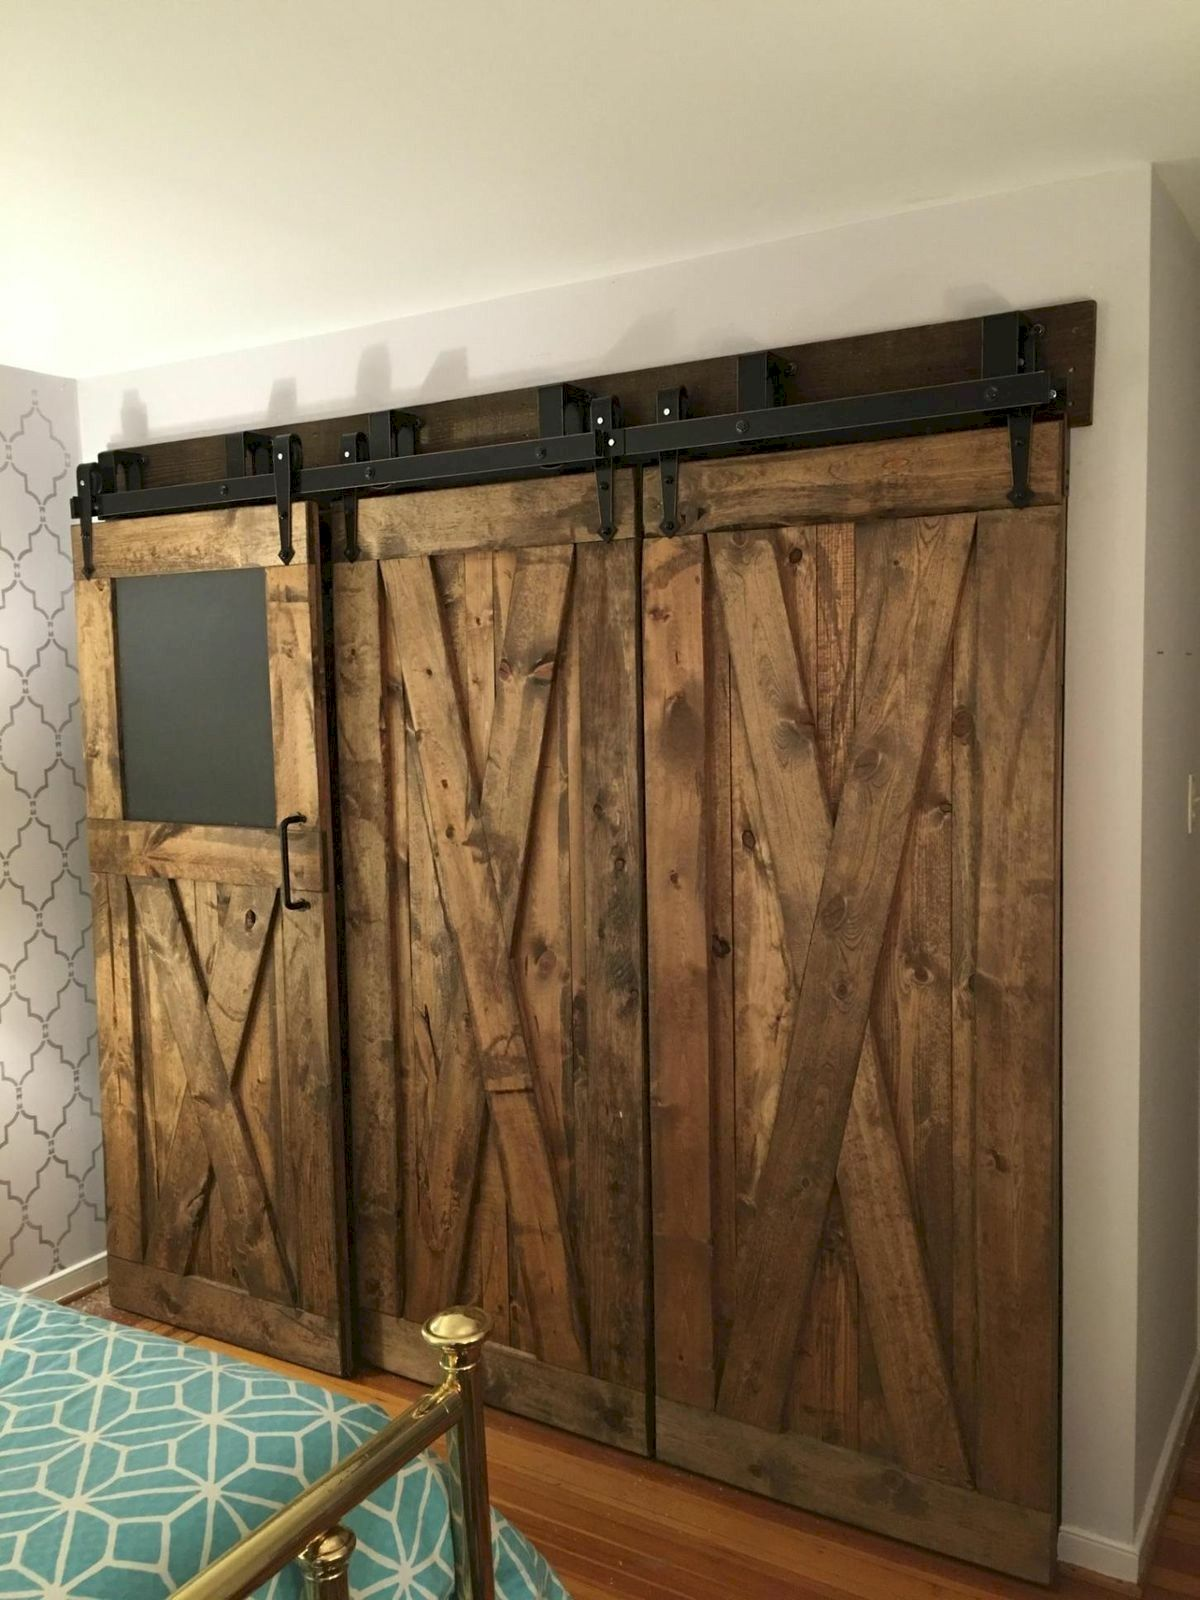 70 Rustic Home Decor Ideas for Doors and Windows (48)